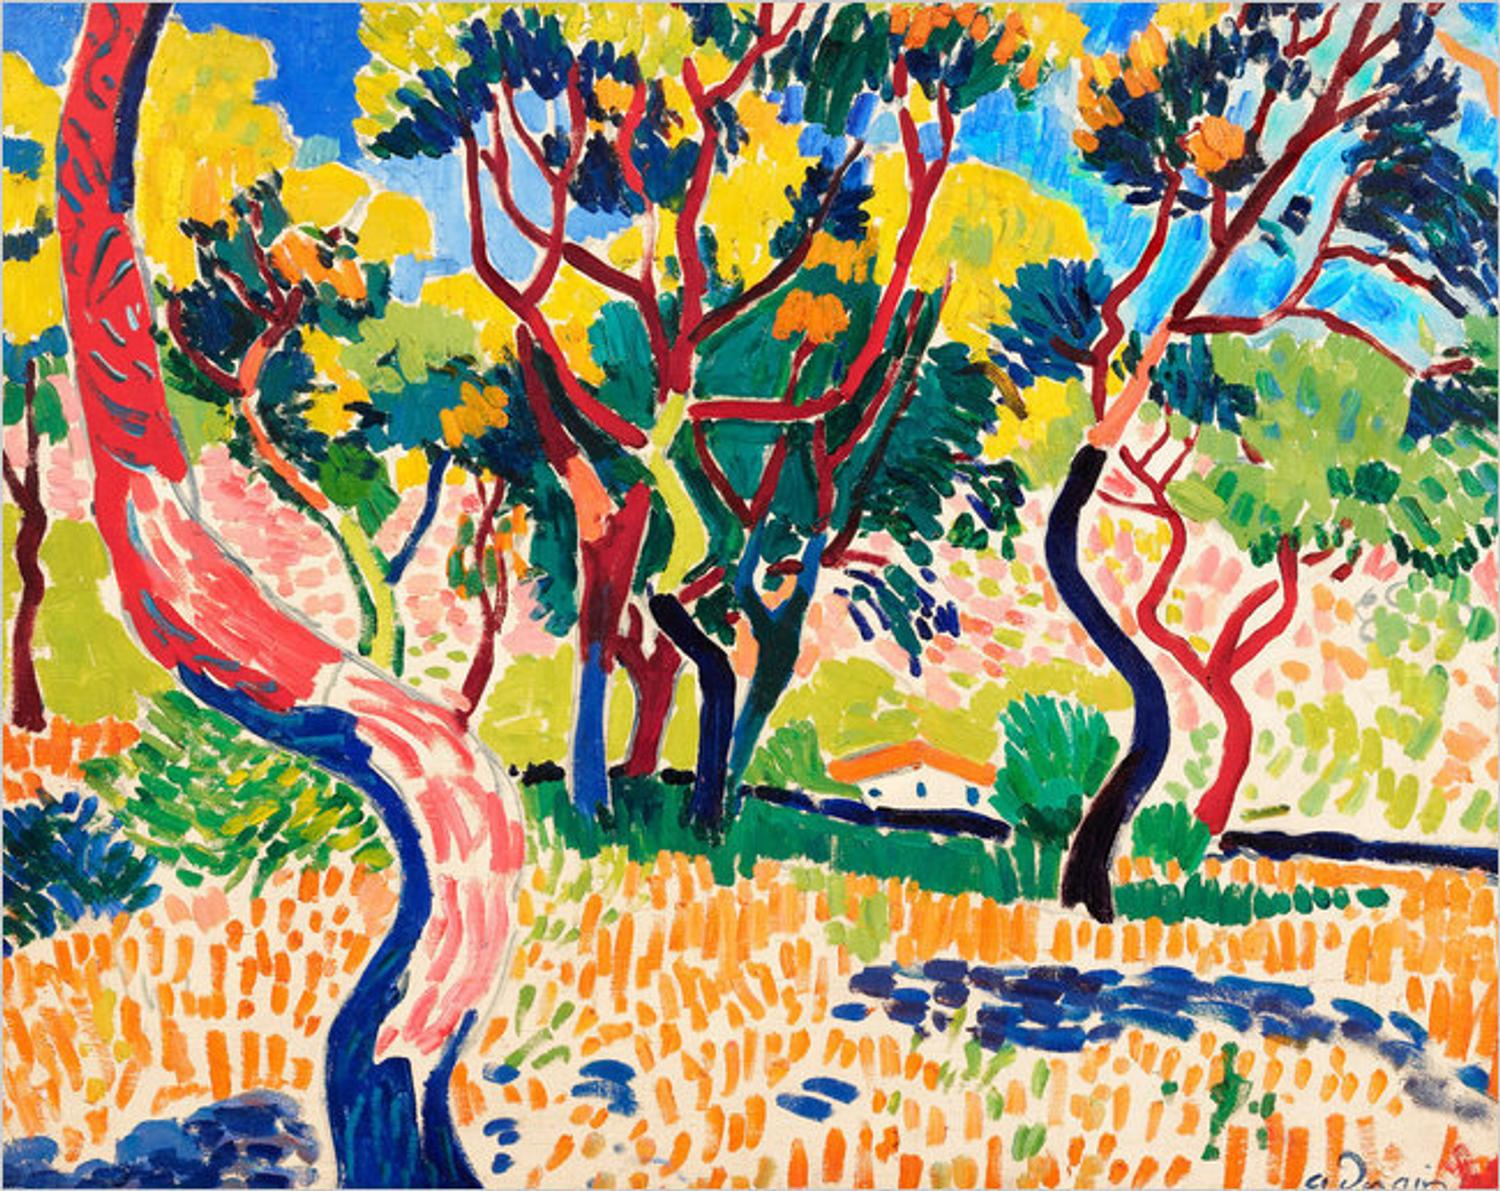 fauvist_Fauvist landscape brightens London auction - ArtfixDaily News Feed